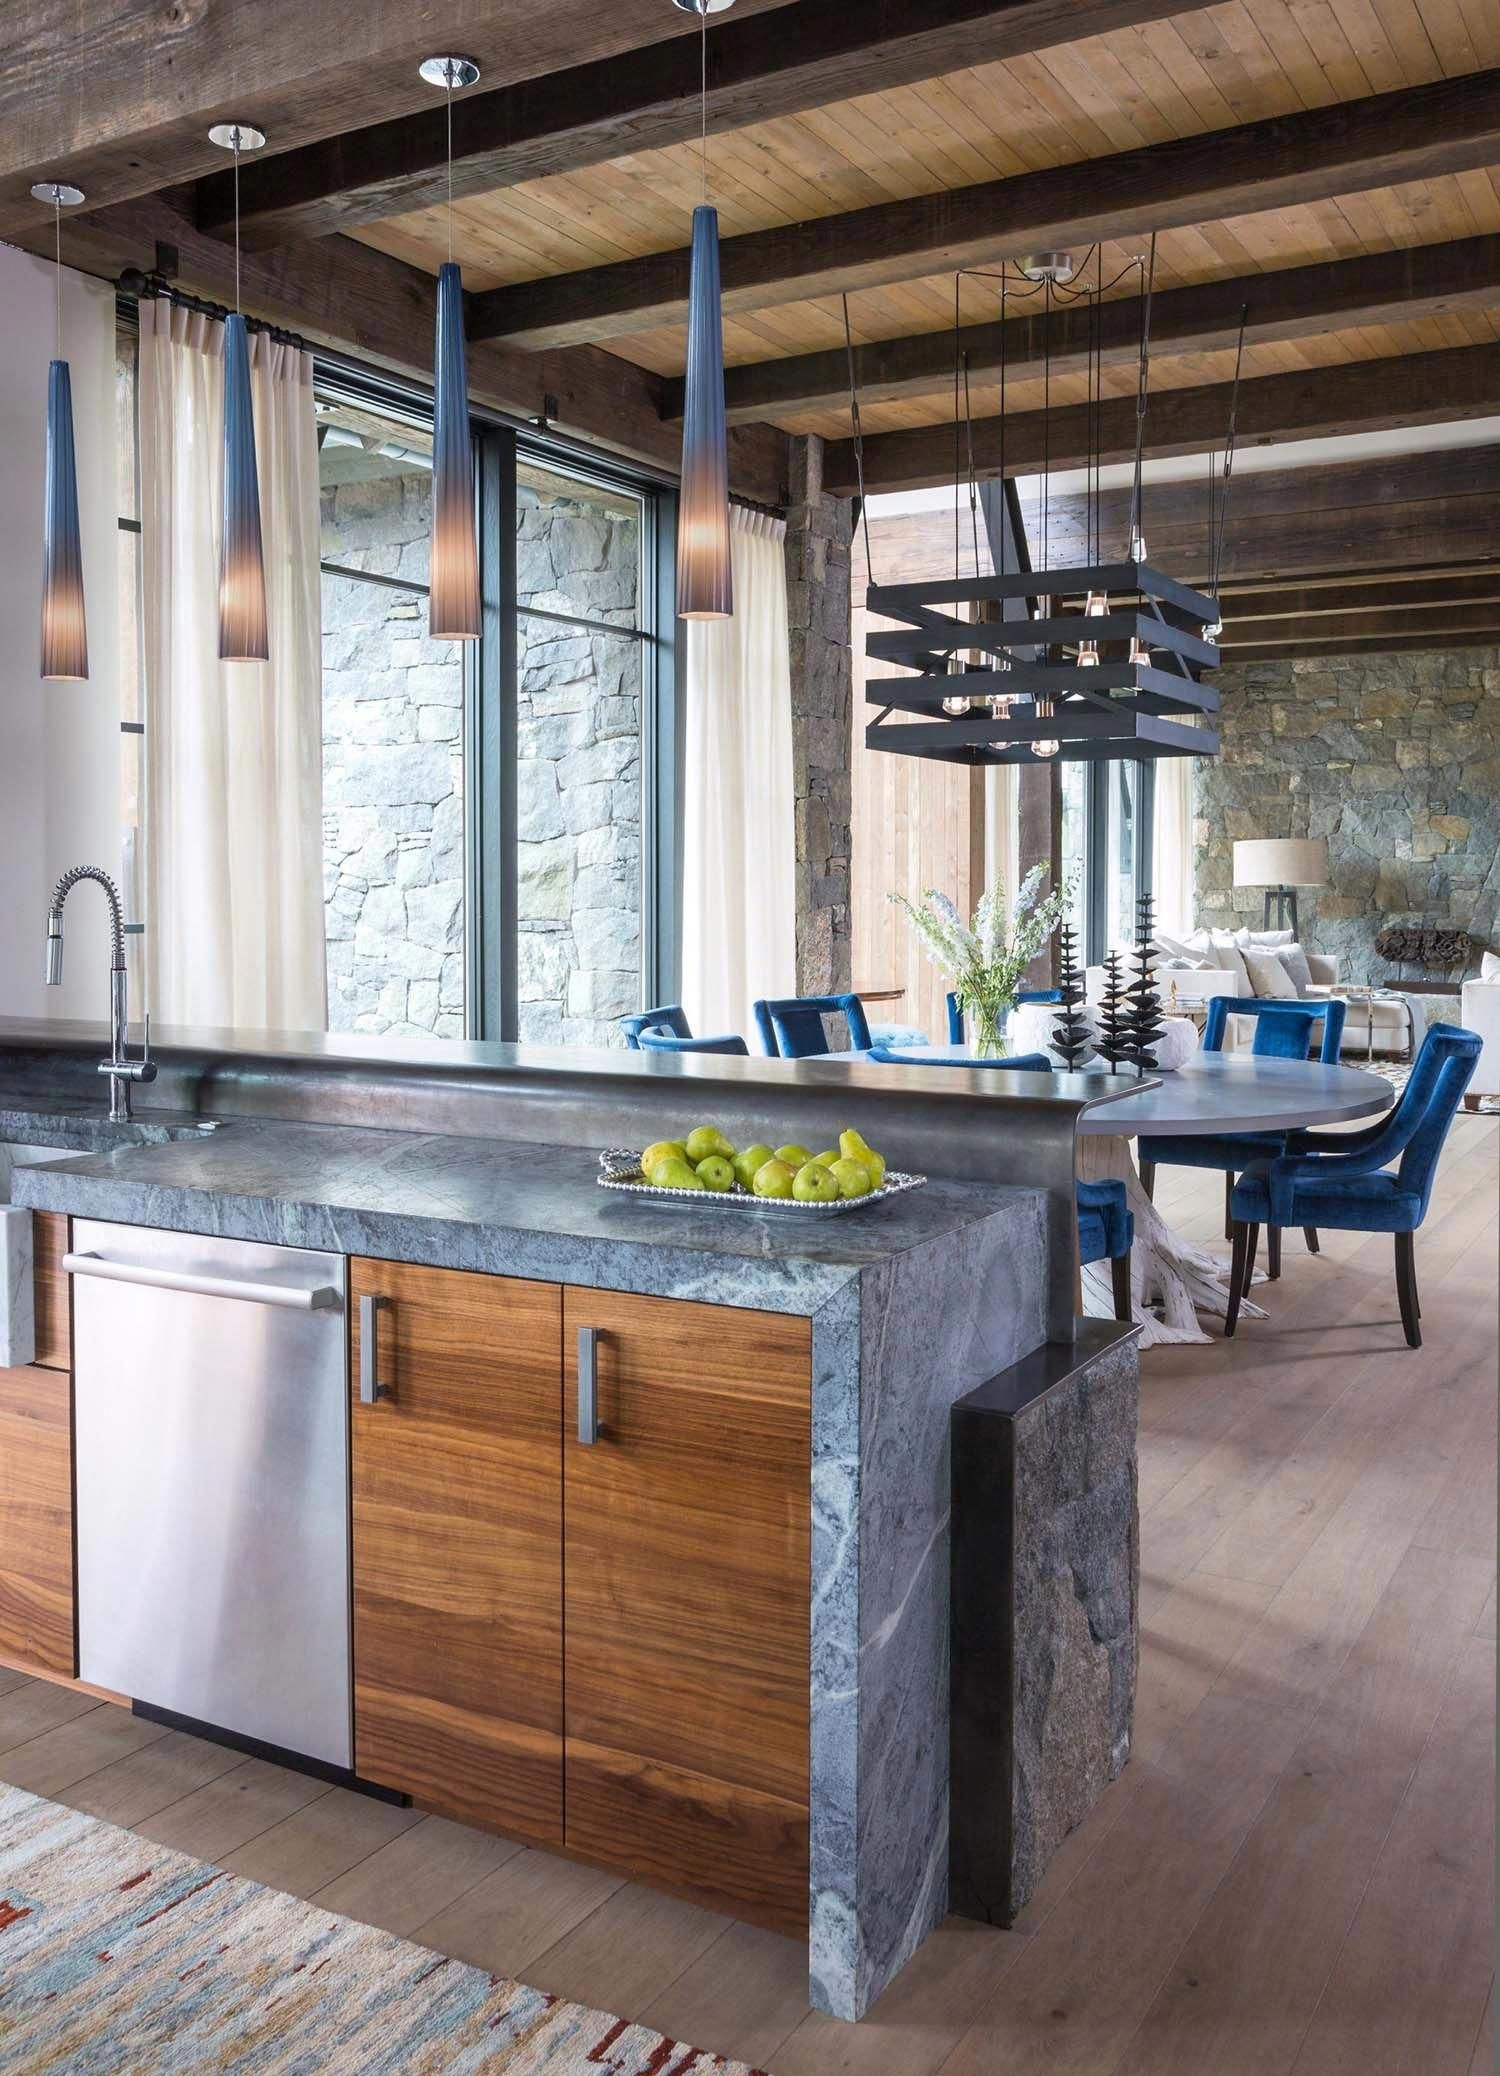 72 mountain chalet house plans lovely mountain chalet in colorado showcases rustic contemporary styling